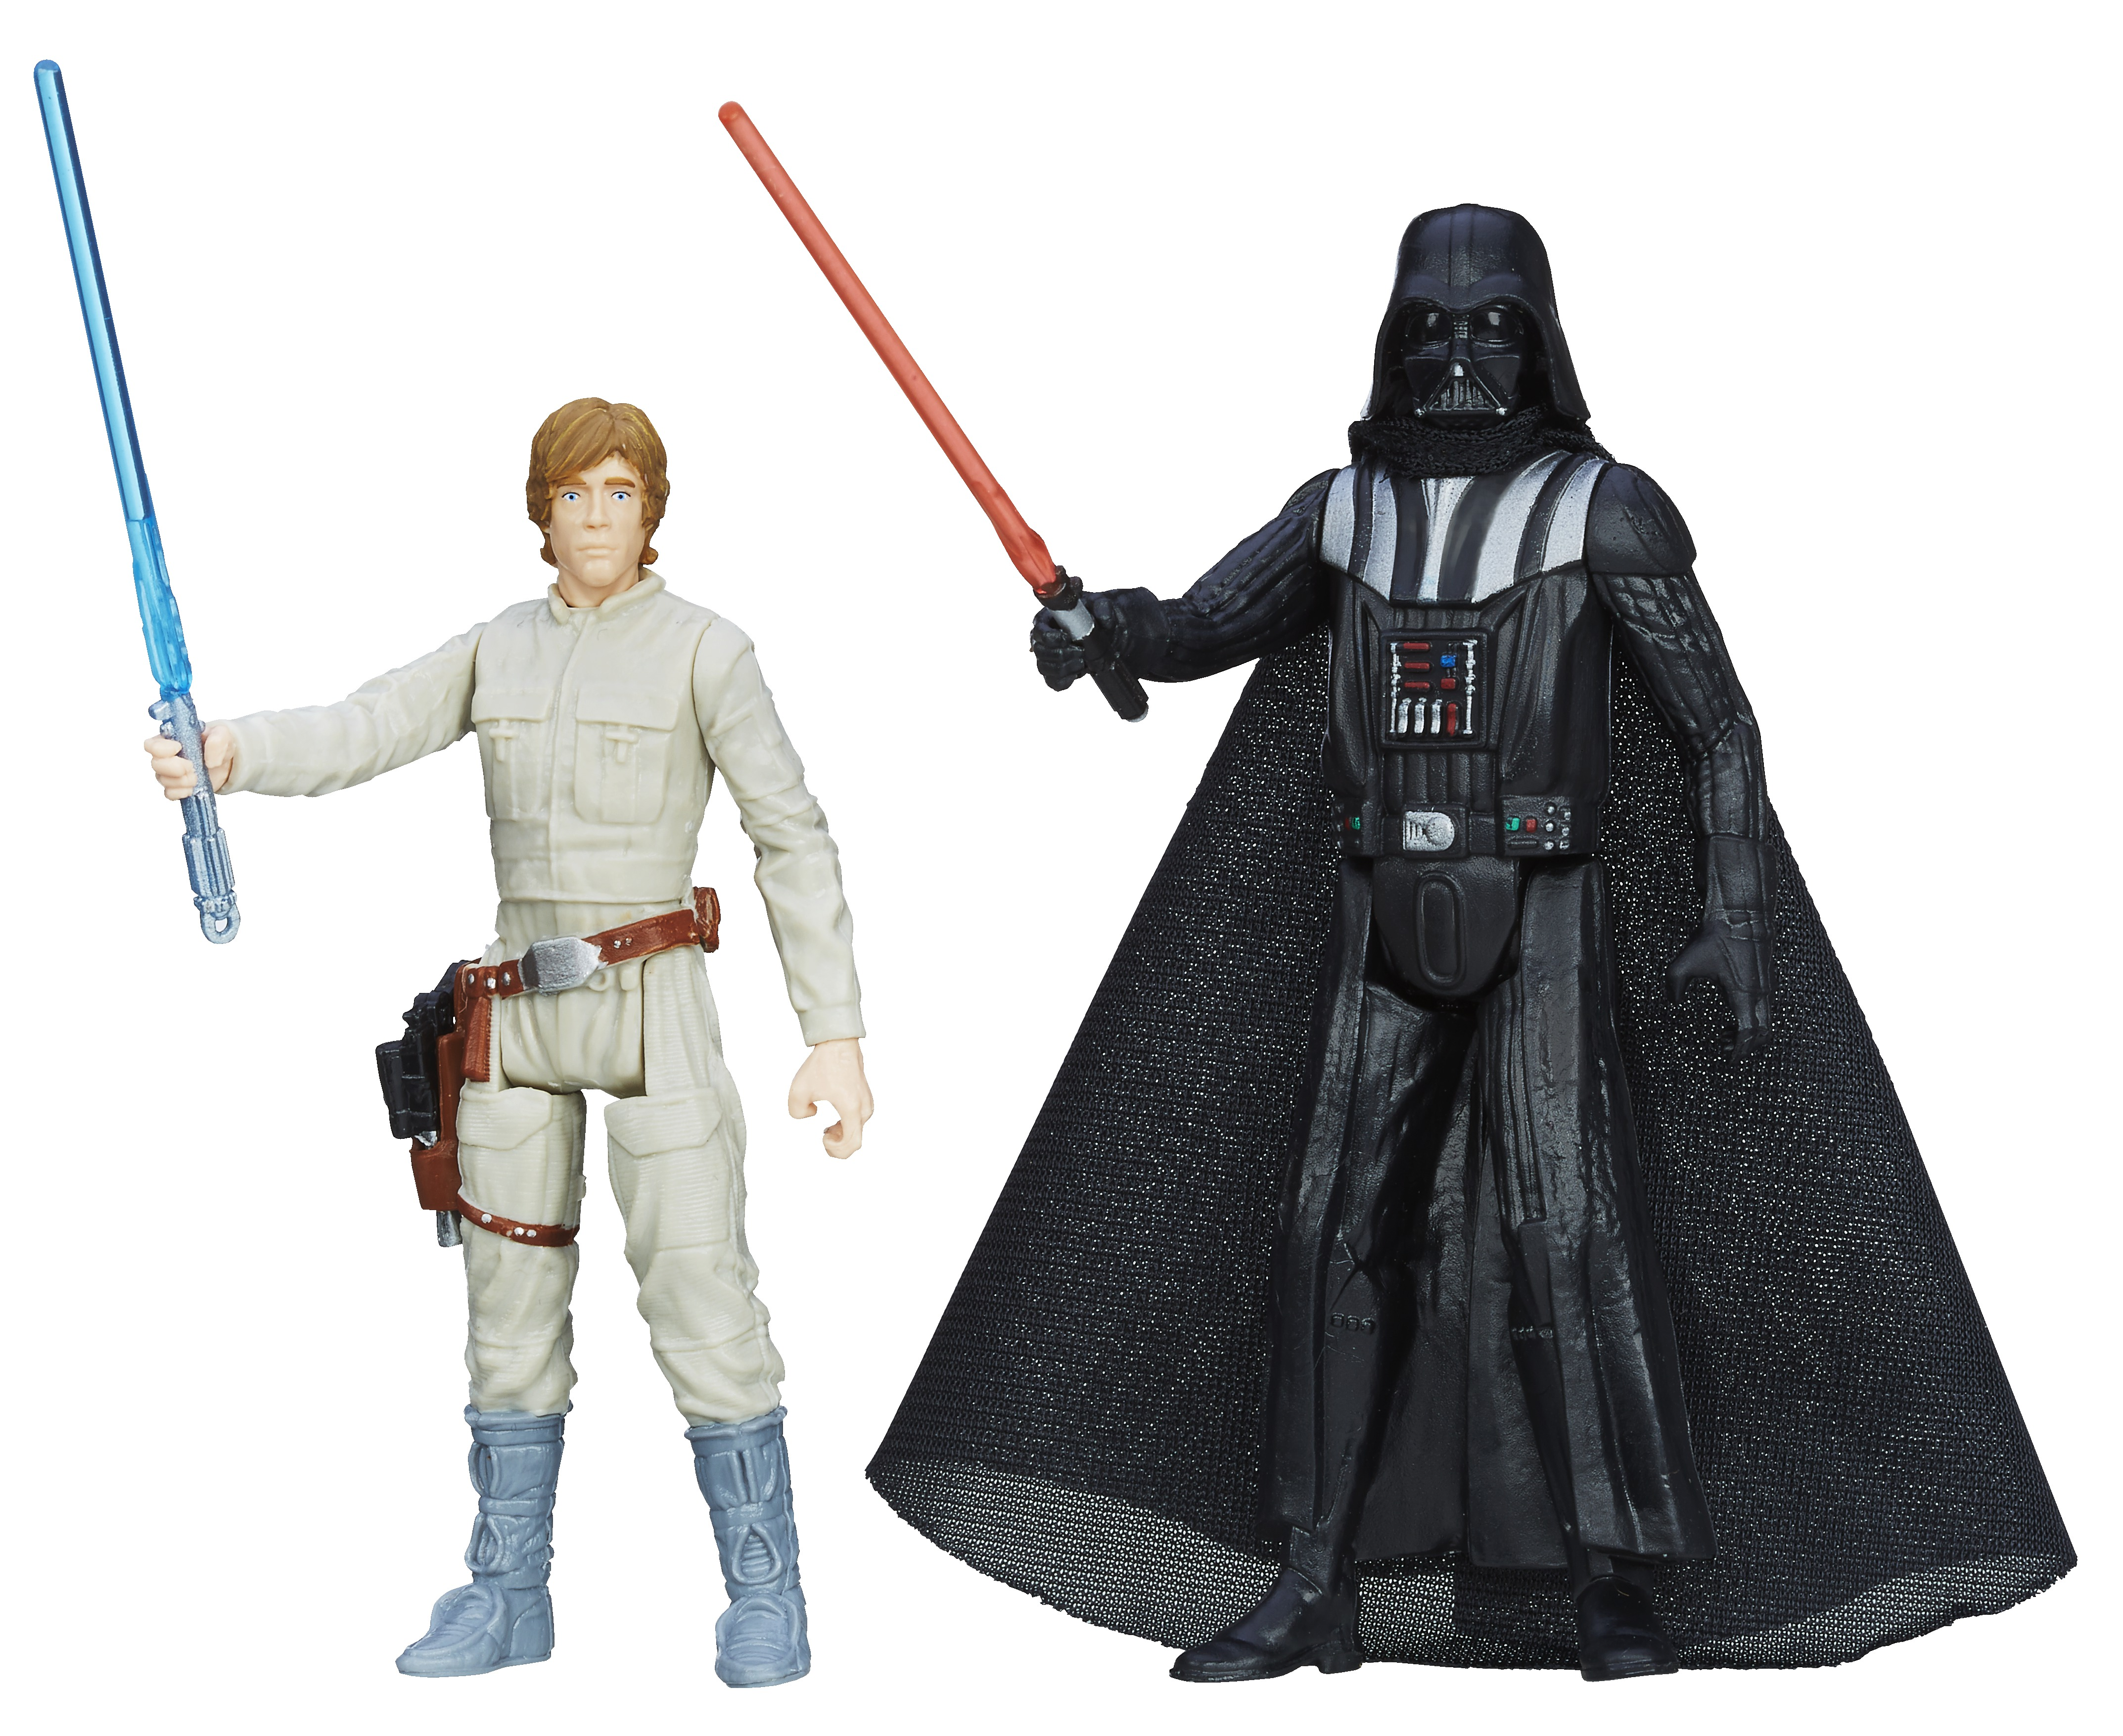 STAR WARS MISSION SERIES DARTH VADER VS LUKE SKYWALKER A5920